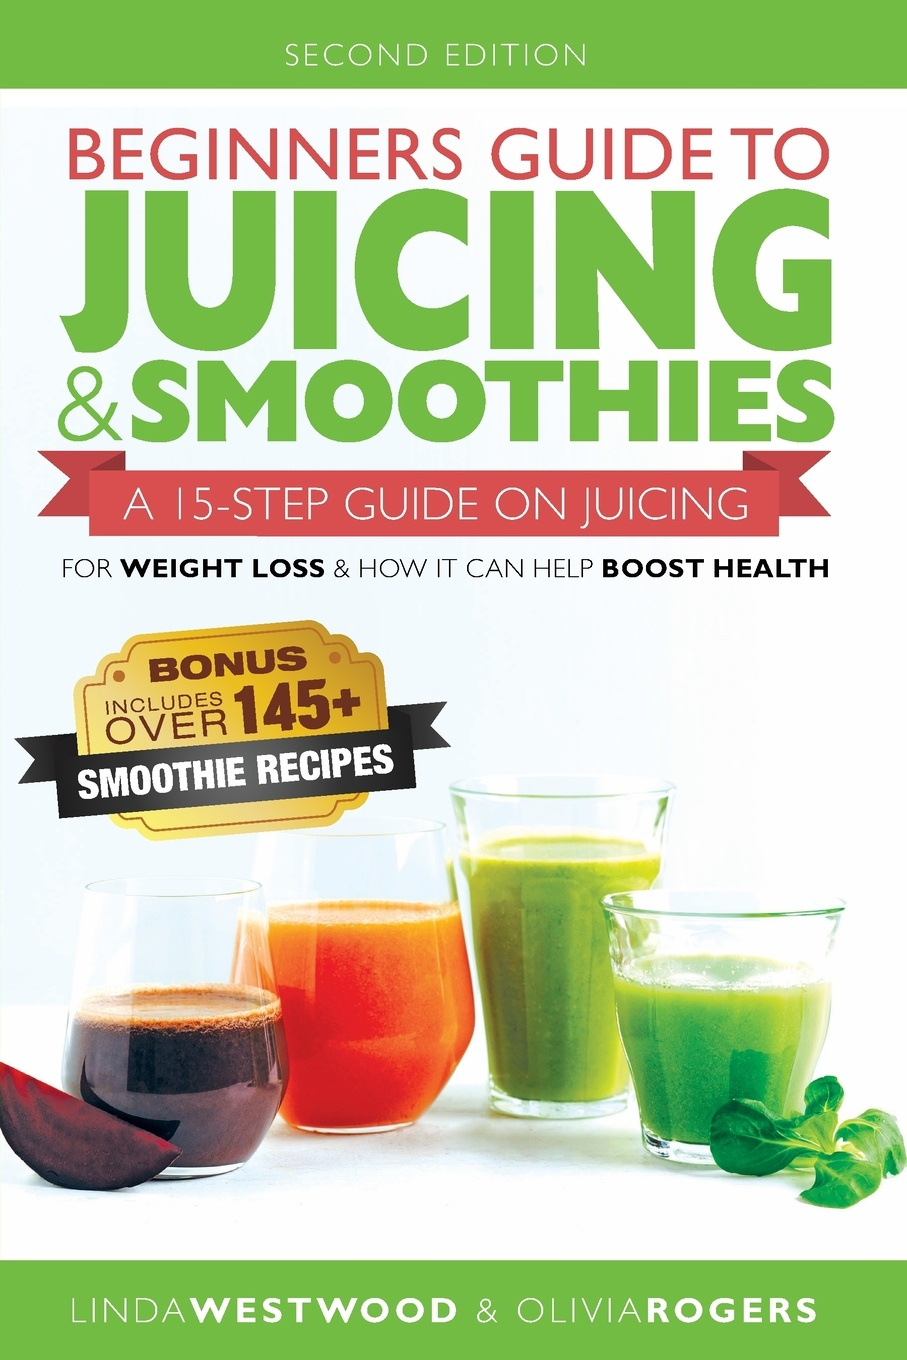 Фото - Linda Westwood Beginners Guide to Juicing & Smoothies. A 15-Step Guide On Juicing for Weight Loss & How It Can Help Boost Health (BONUS: Includes Over 145 Smoothie Recipes) pat crocker juicing and smoothies for dummies